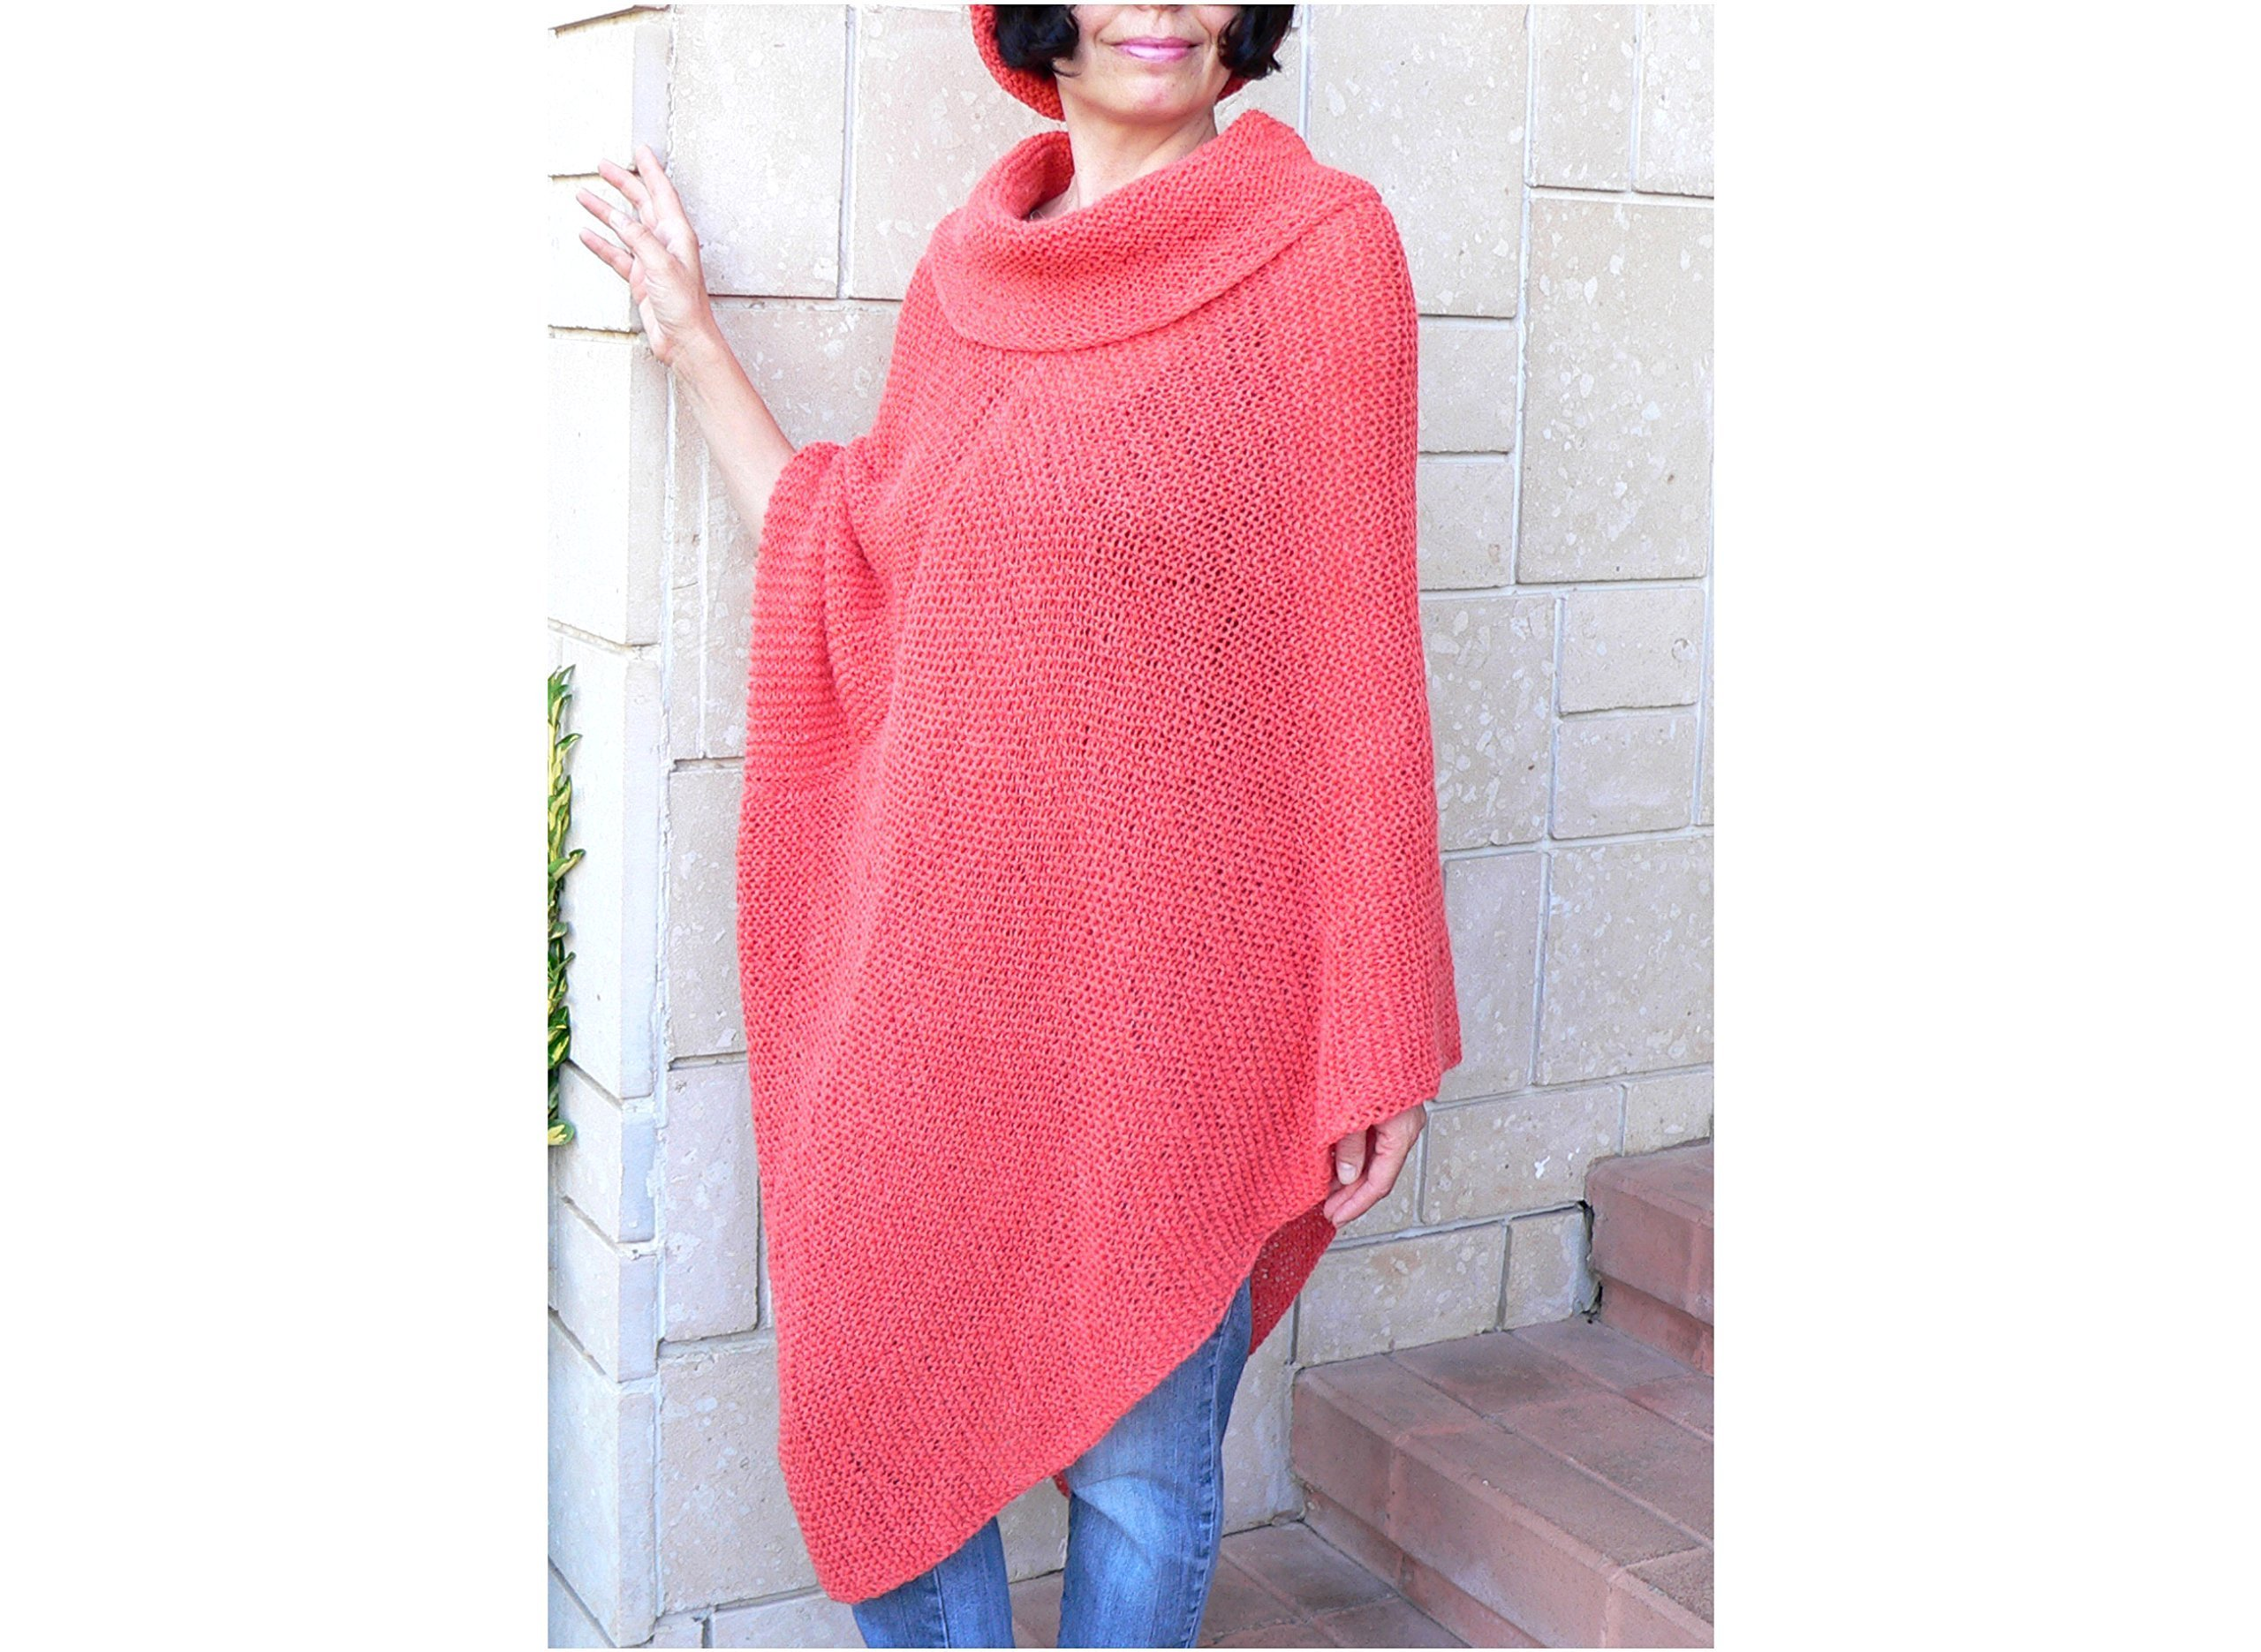 Slouchy Bulky Loose Fit Oversize Handknit Sweater Cozy Alpaca Wool Set Poncho Hat Women Shawl Christmas Red Orange Color Big Cowl Neck